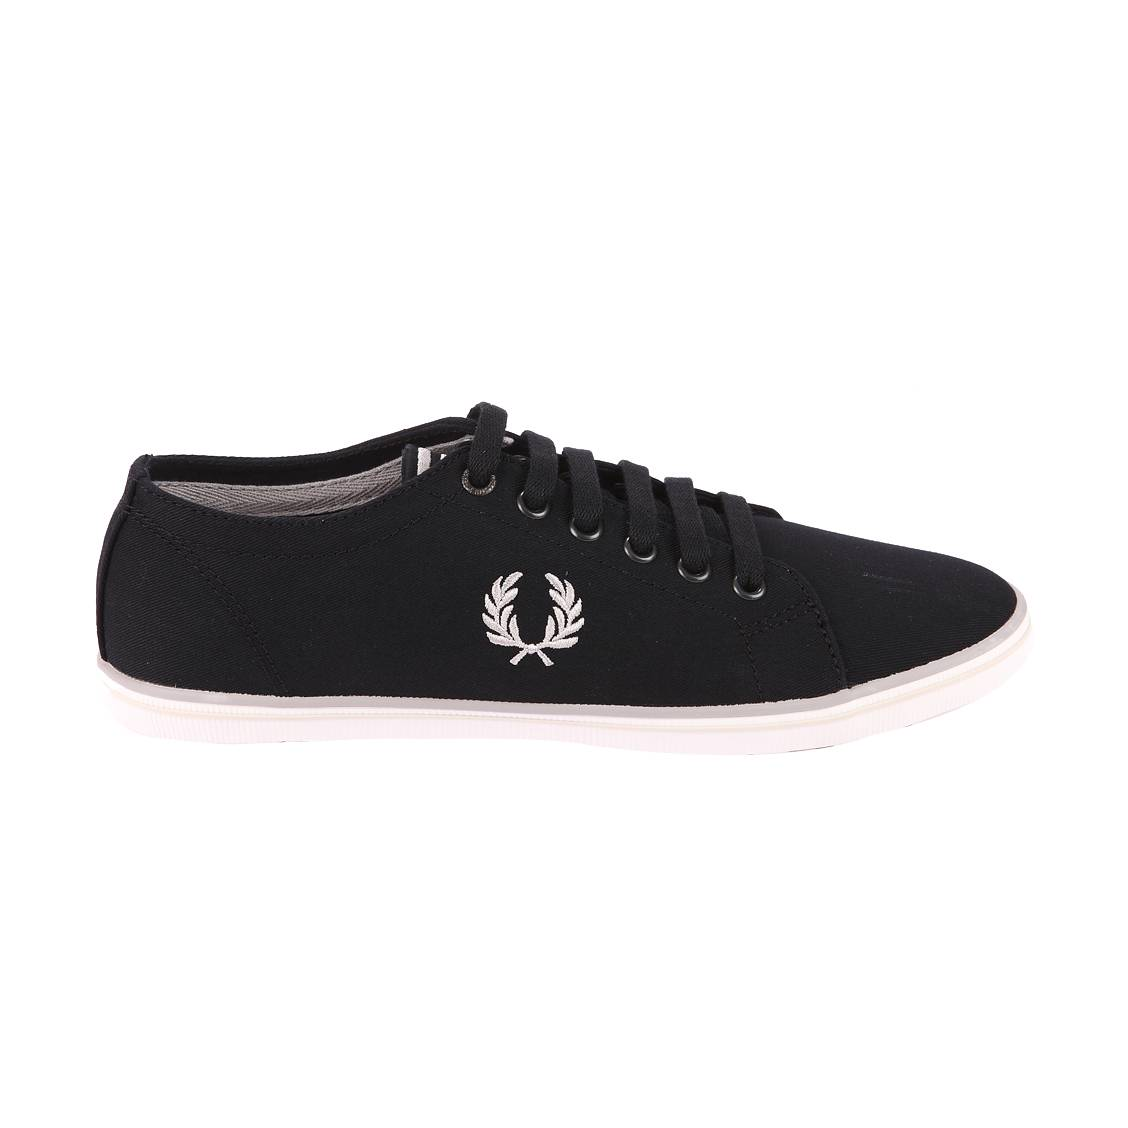 Baskets Fred Perry Kingston twill en toile noire